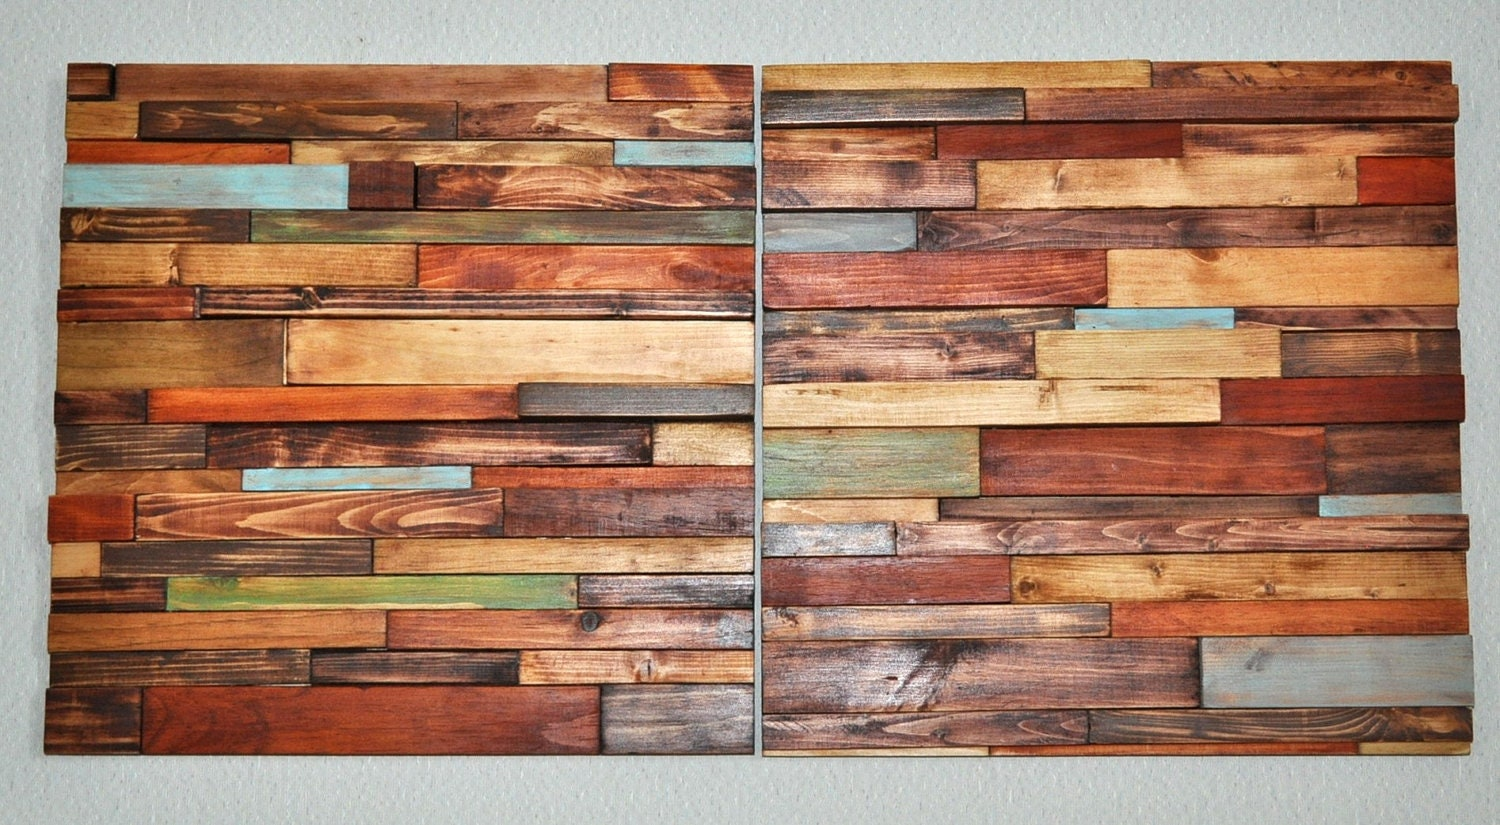 Modern Rustic Wood Art 15x15 2 Pc Modern Wall Hanging Made